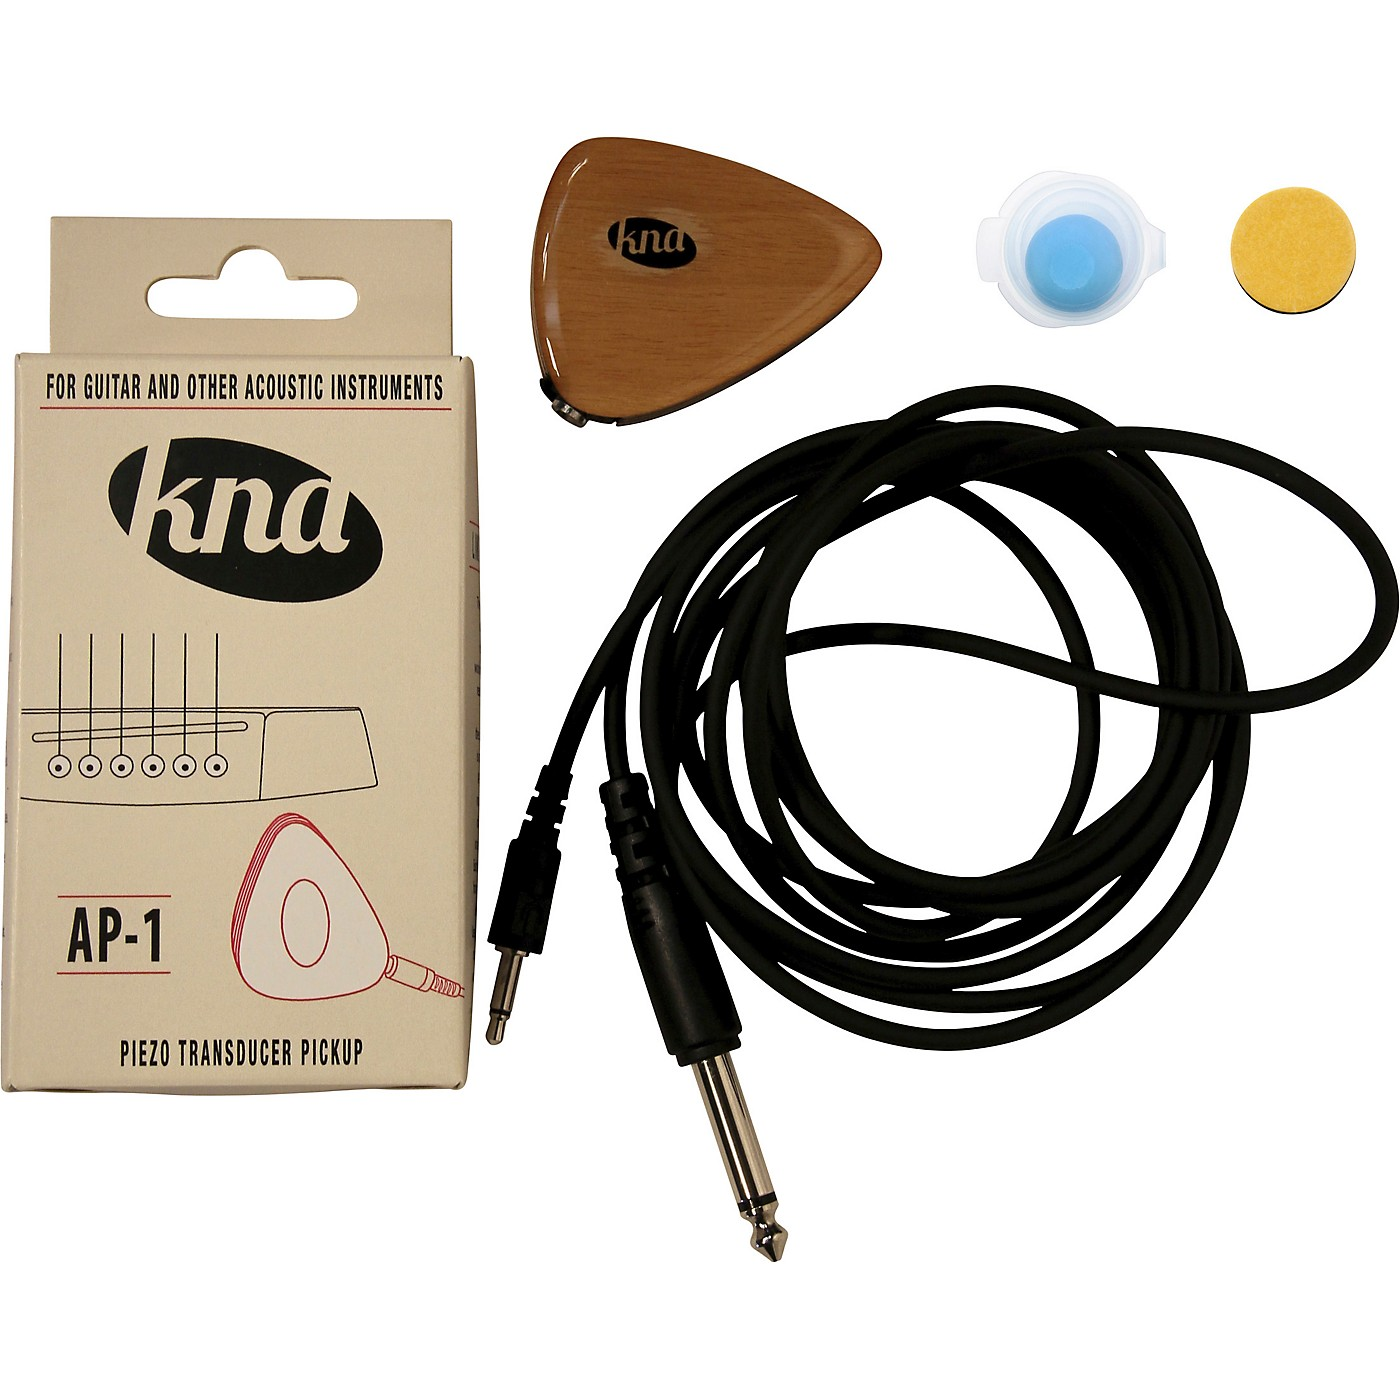 KNA AP-1 Portable Piezo for Guitar and Other Acoustic Instruments thumbnail